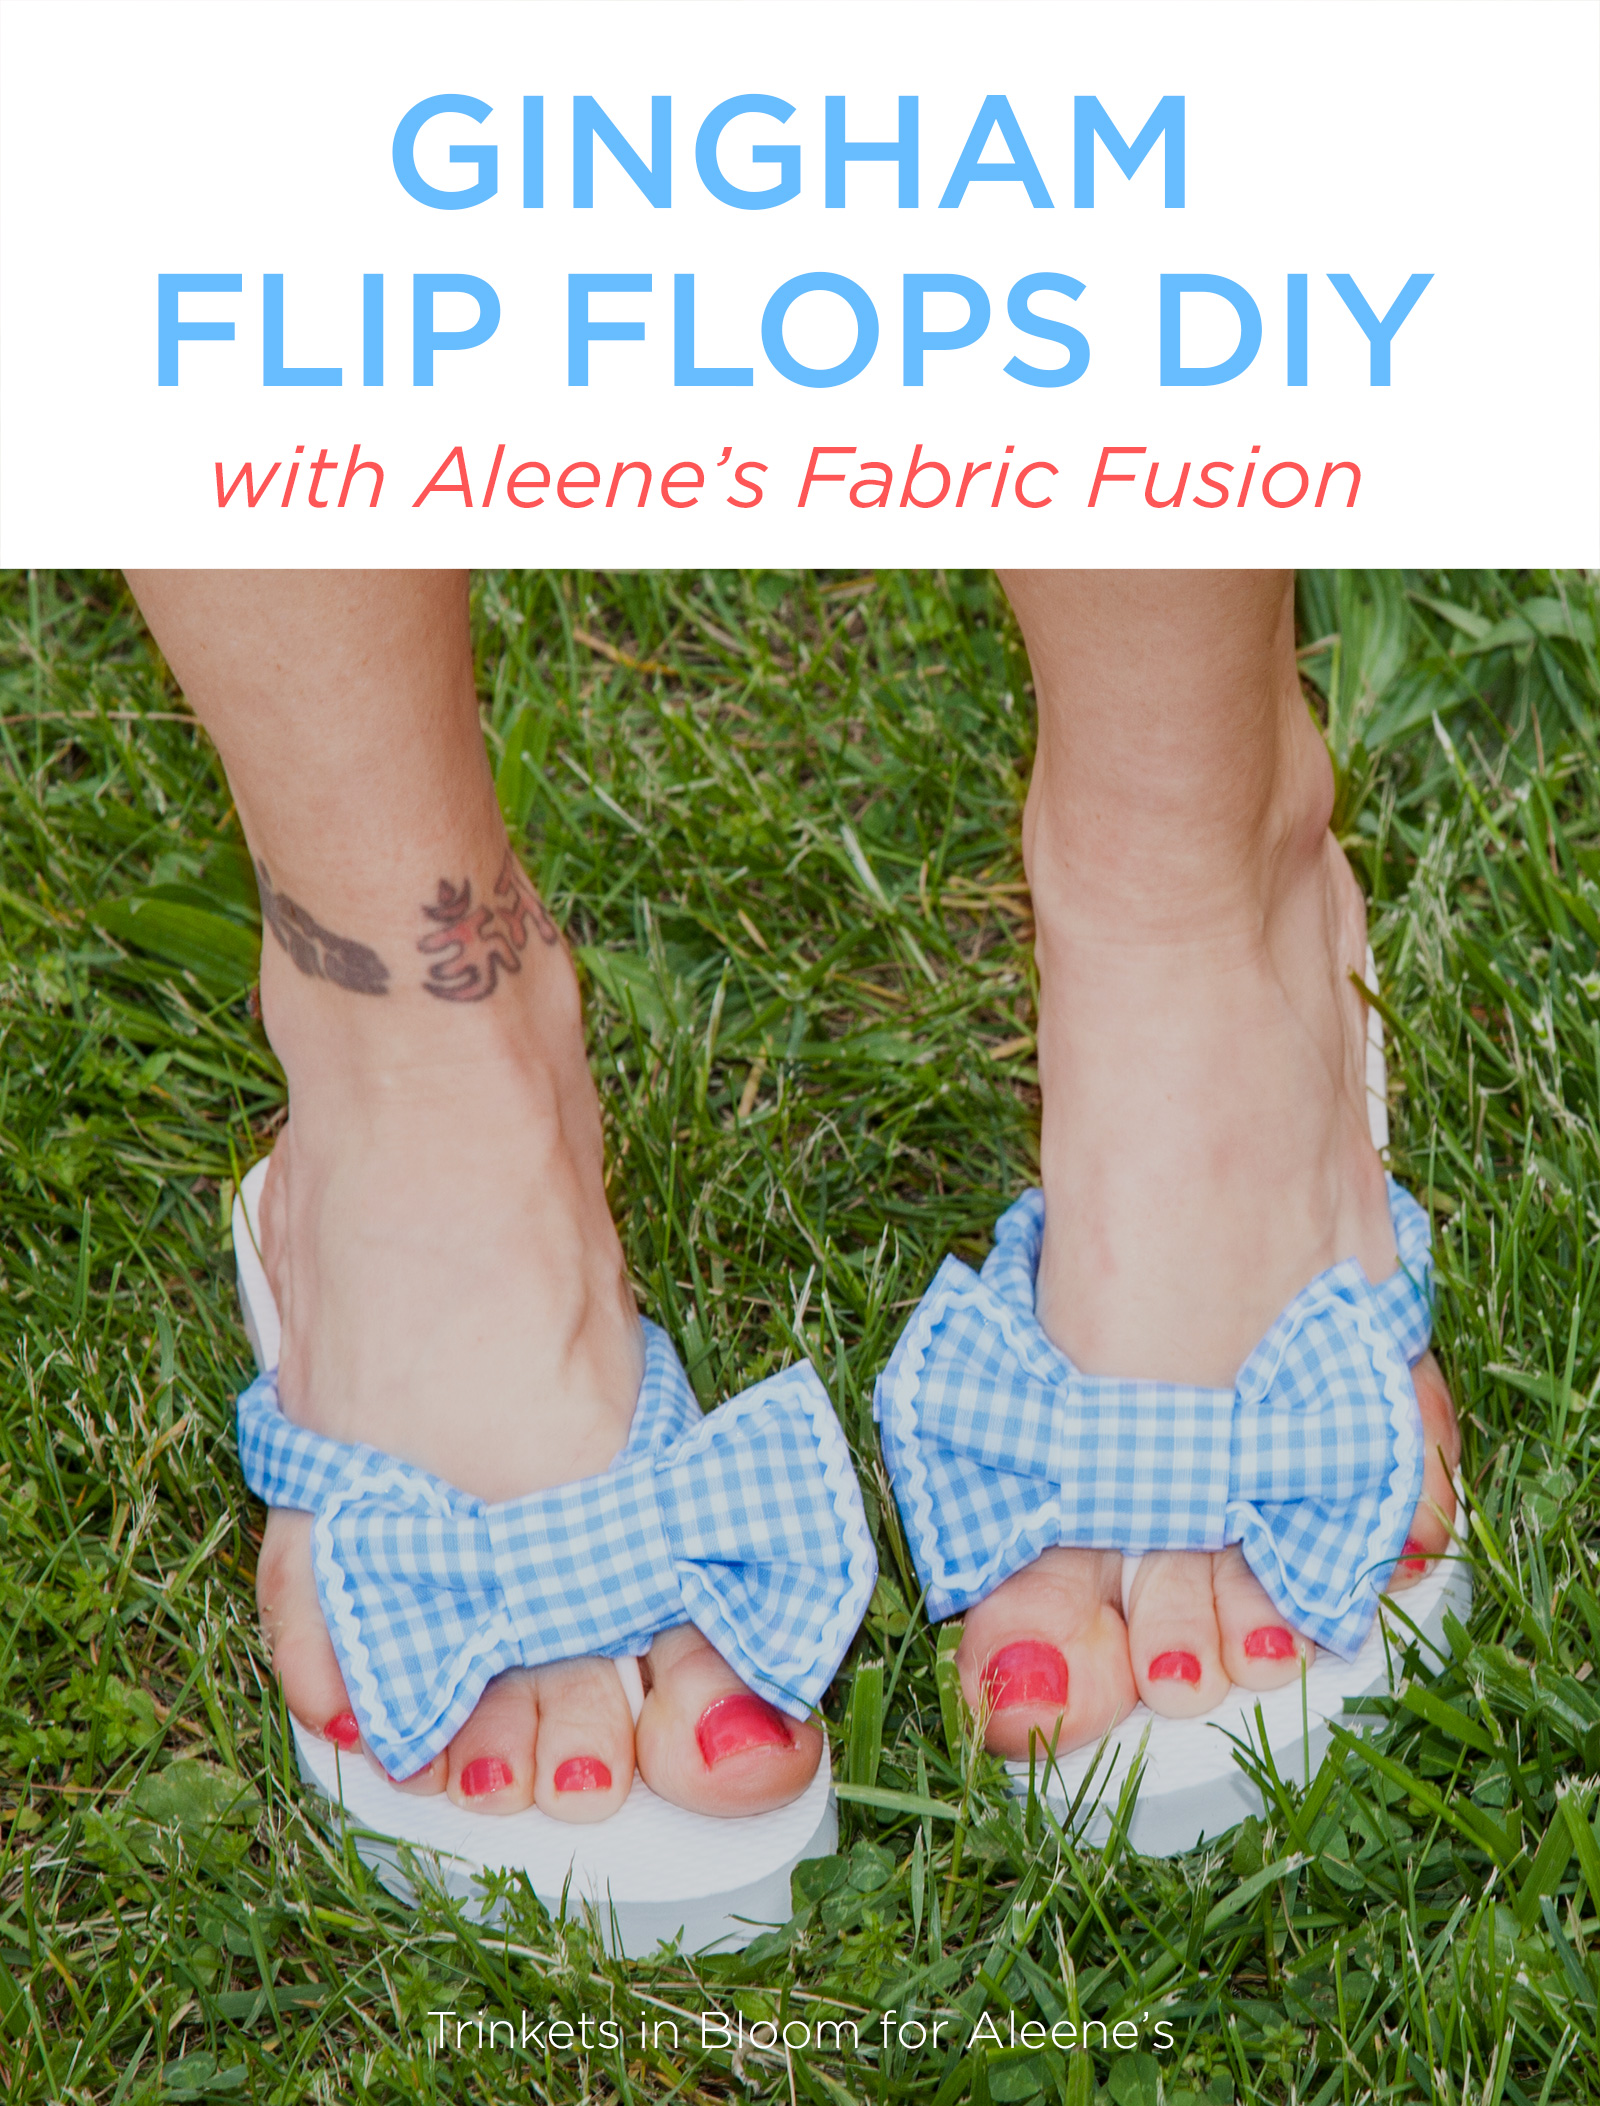 Gingham Flip Flops DIY Graphic